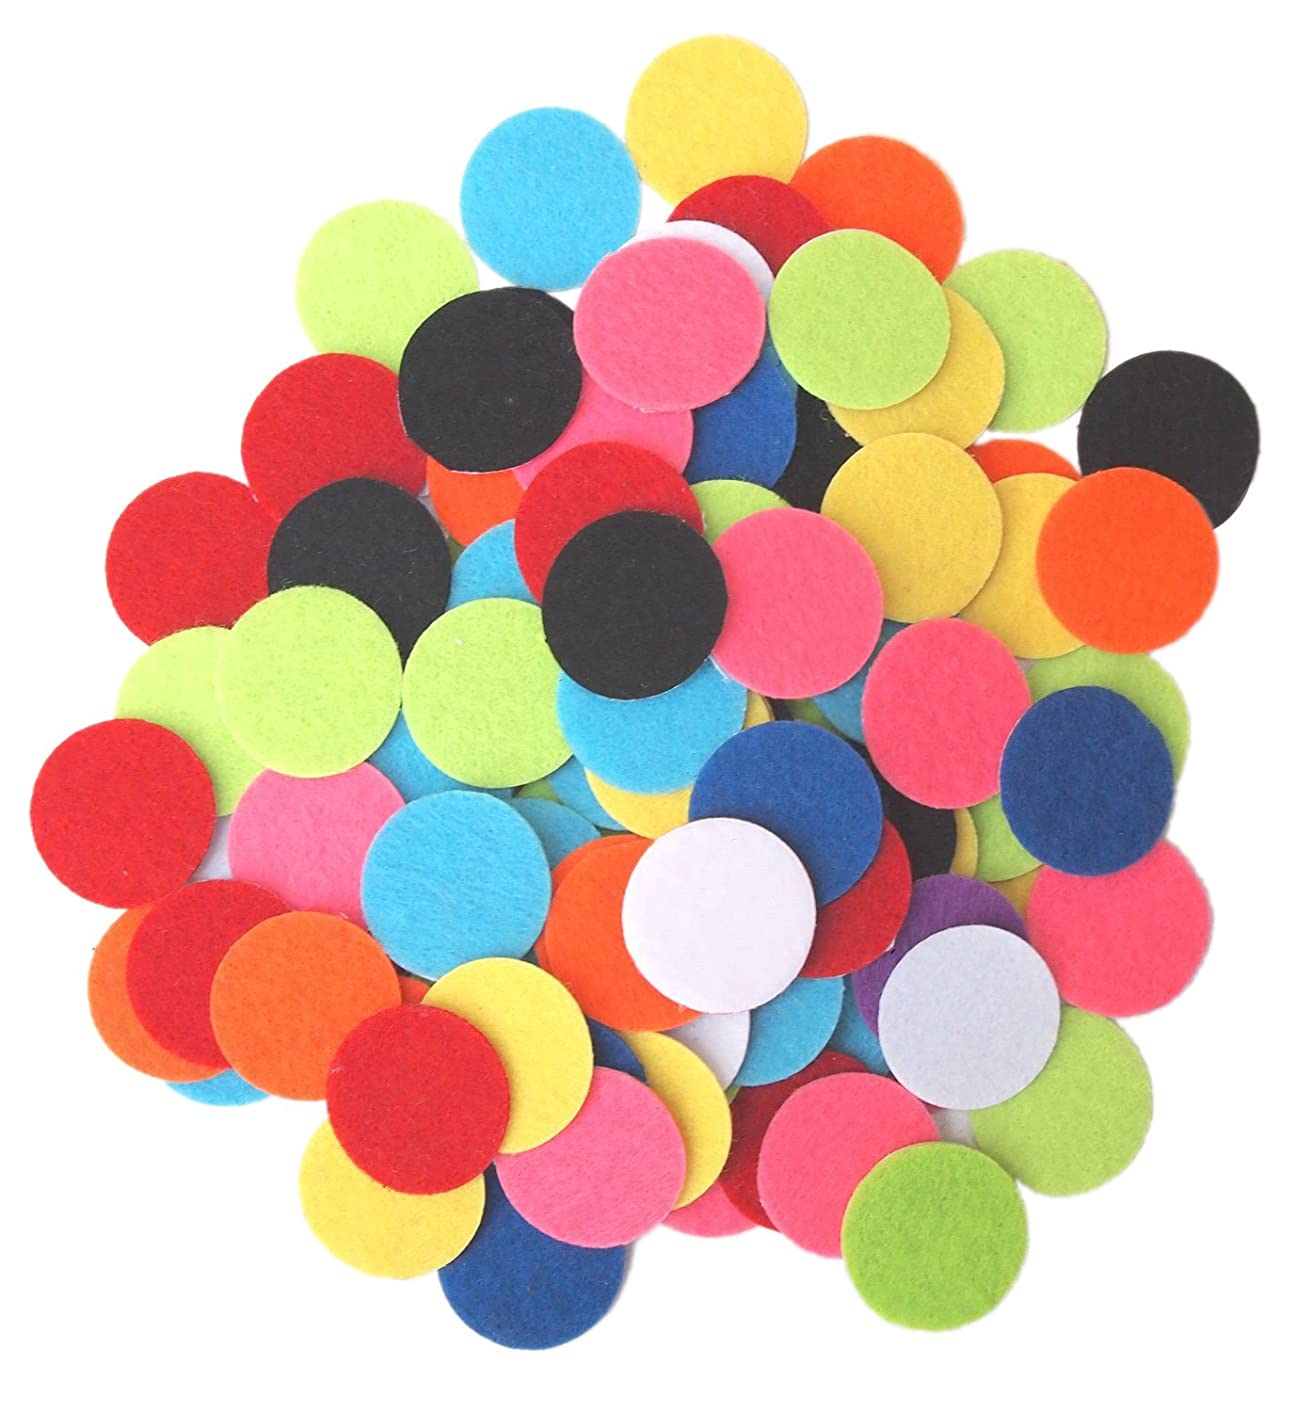 Playfully Ever After 1 inch Mixed Color Assortment 100pc Felt Circle Stickers vklecbjs45417487